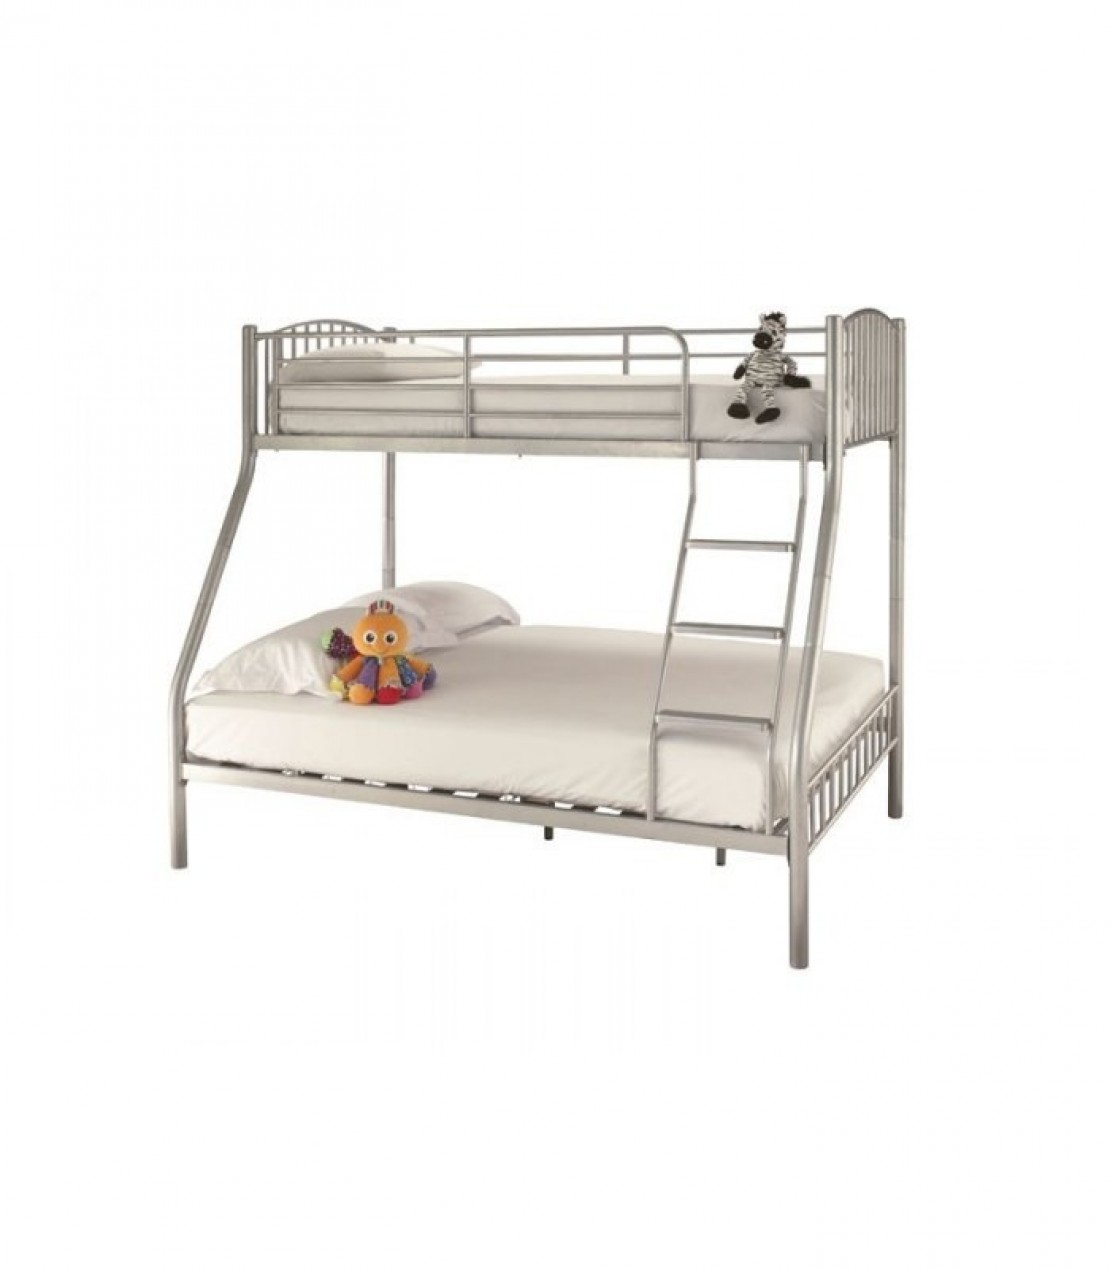 /_images/product-photos/serene-furnishings-oslo-three-sleeper-silver-a.jpg